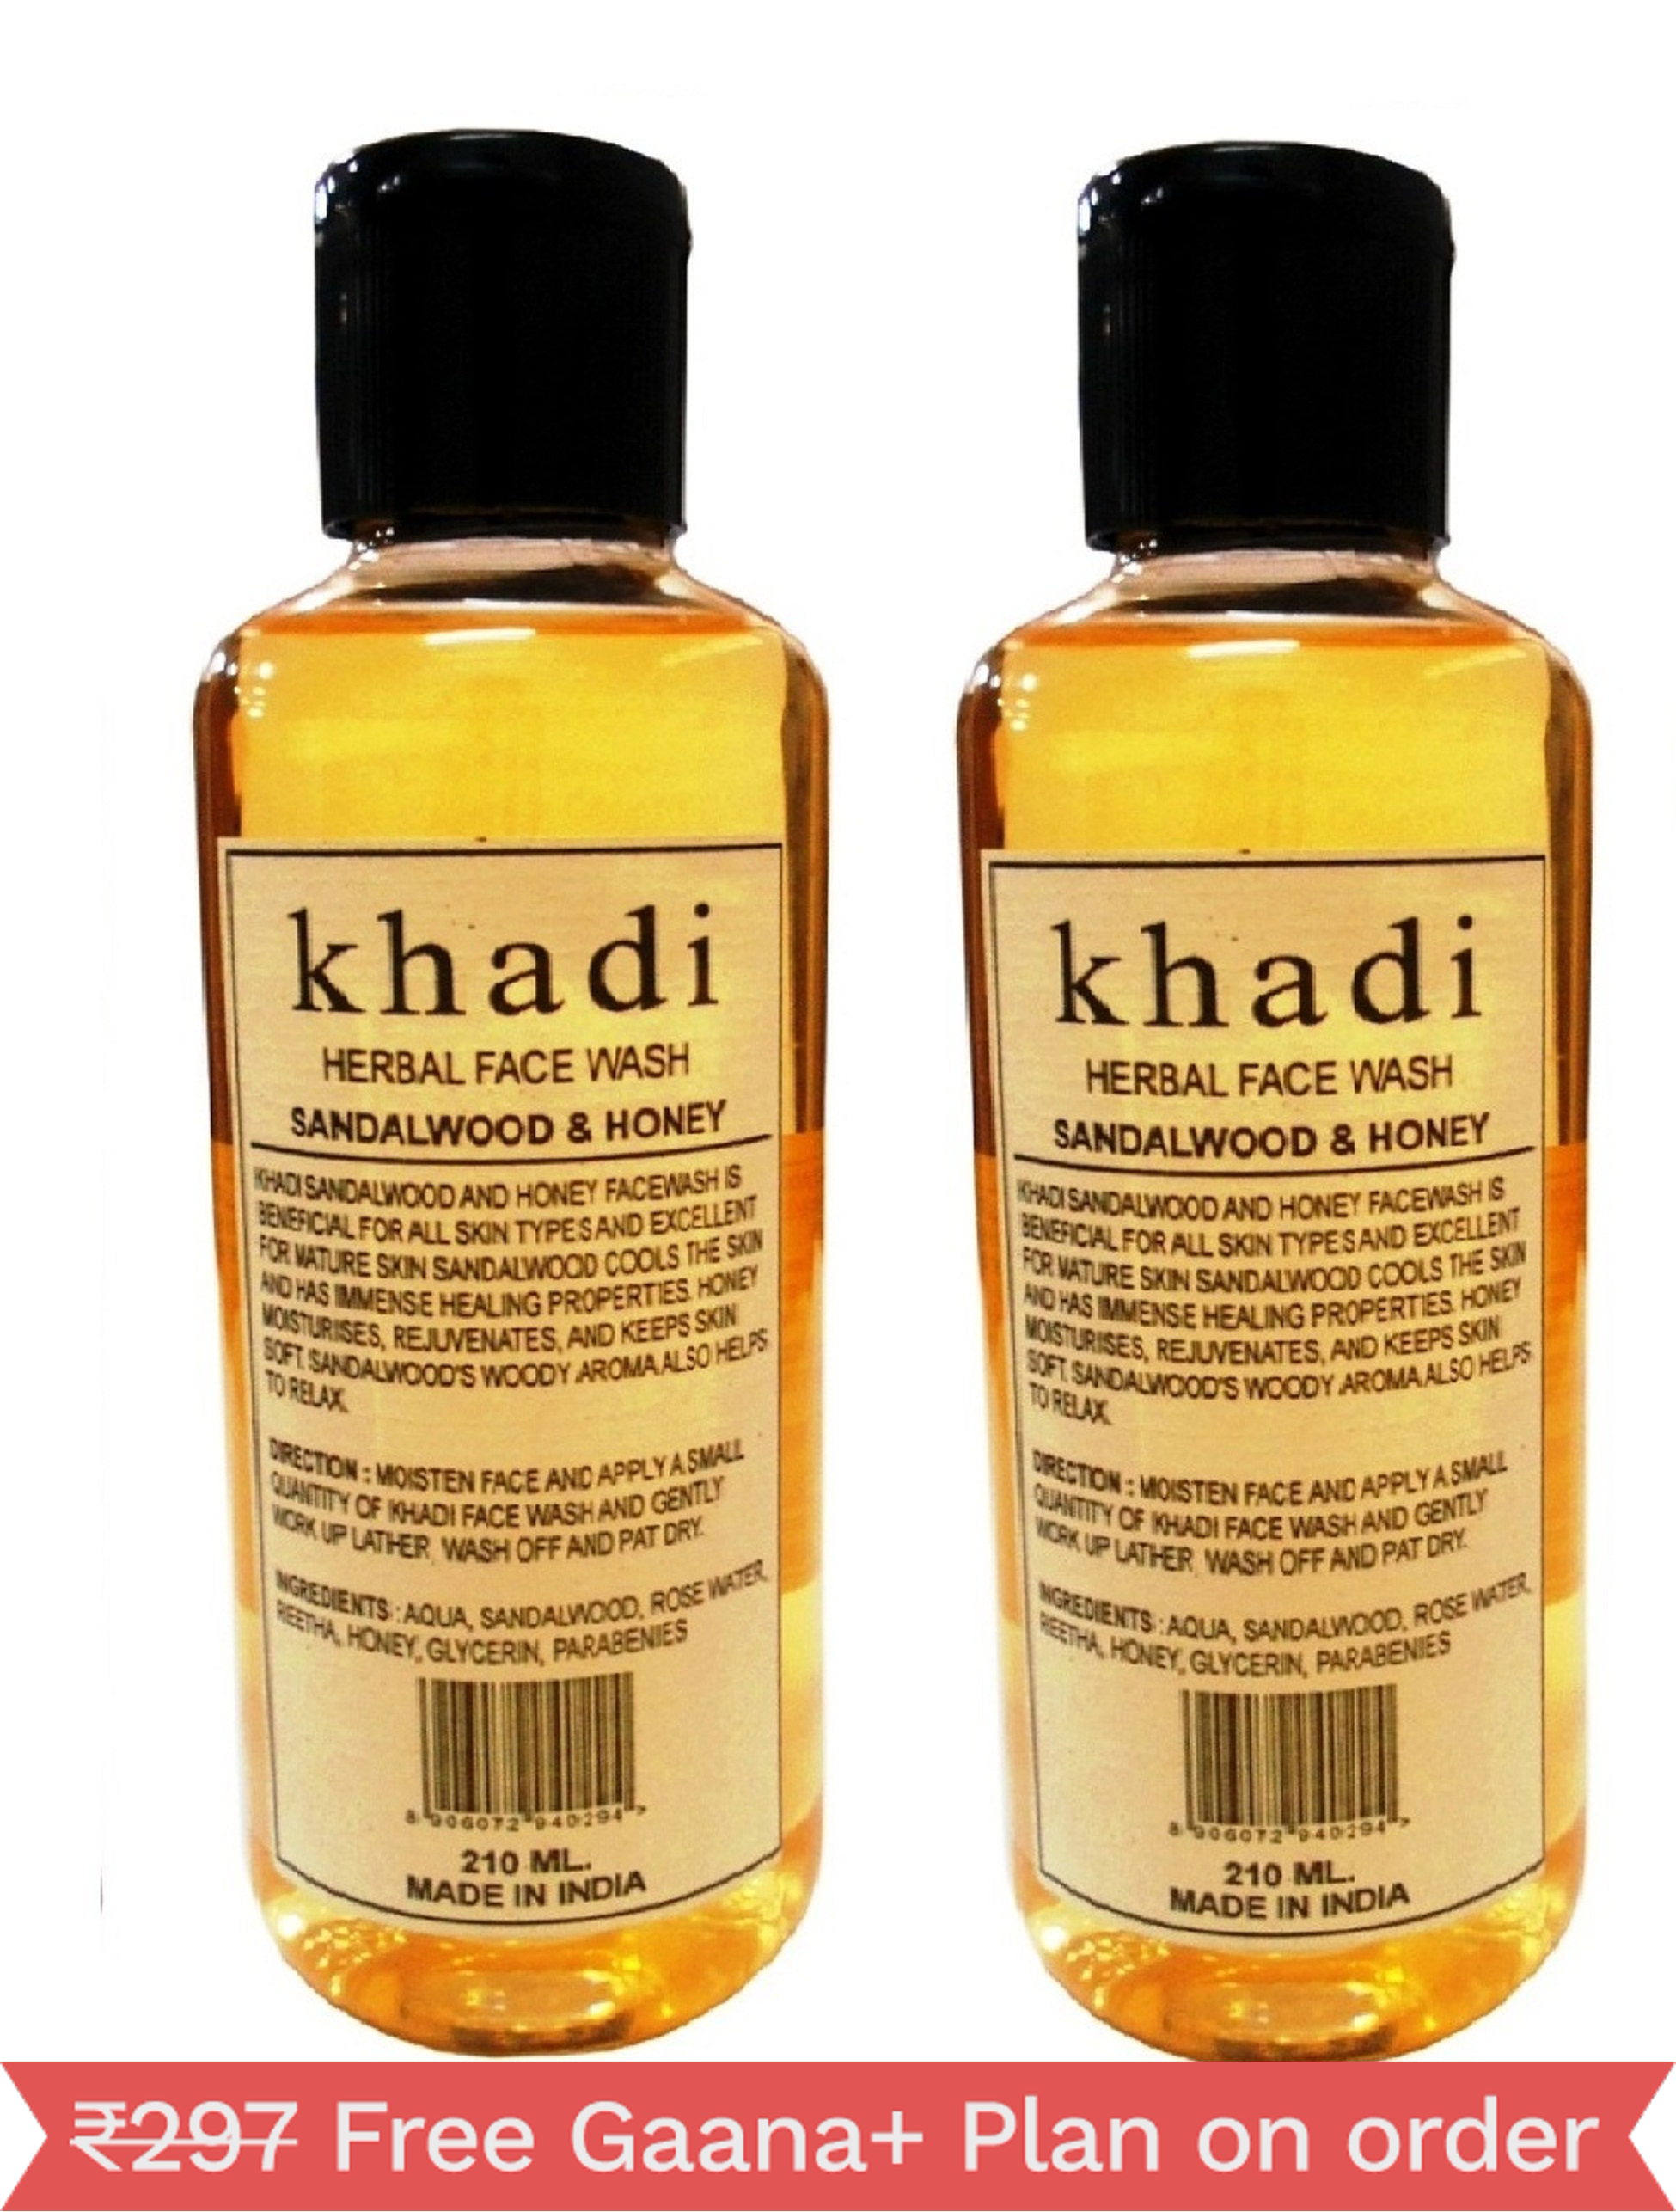 Khadi Herbal Sandalwood & Honey  Face Wash, 210ml - Pack of 2